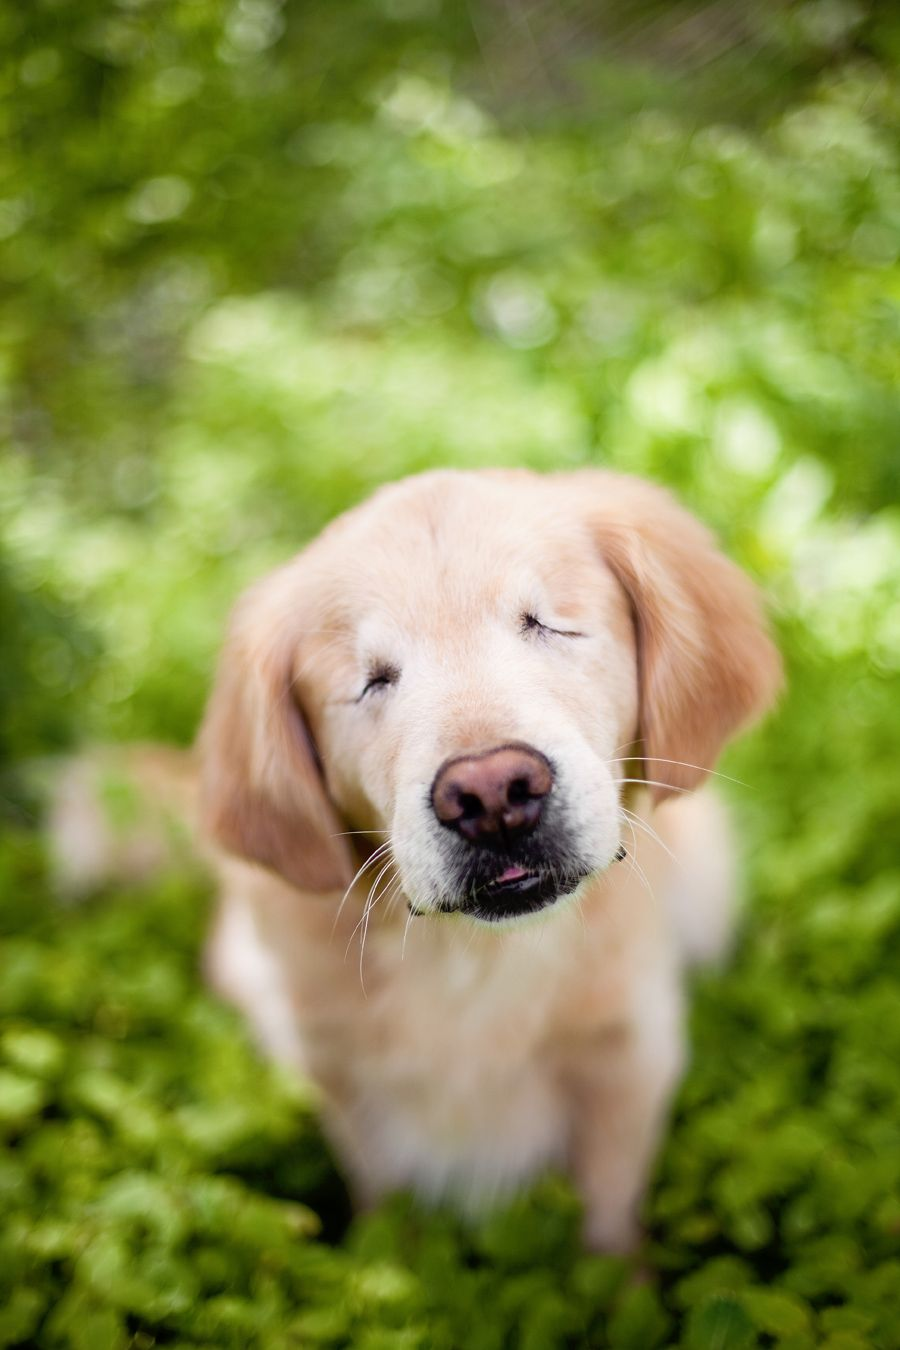 Smiley The Golden Retriever By Happy Tails Pet Photography Puppy - Born blind smiley the golden retriever becomes a loving therapy dog